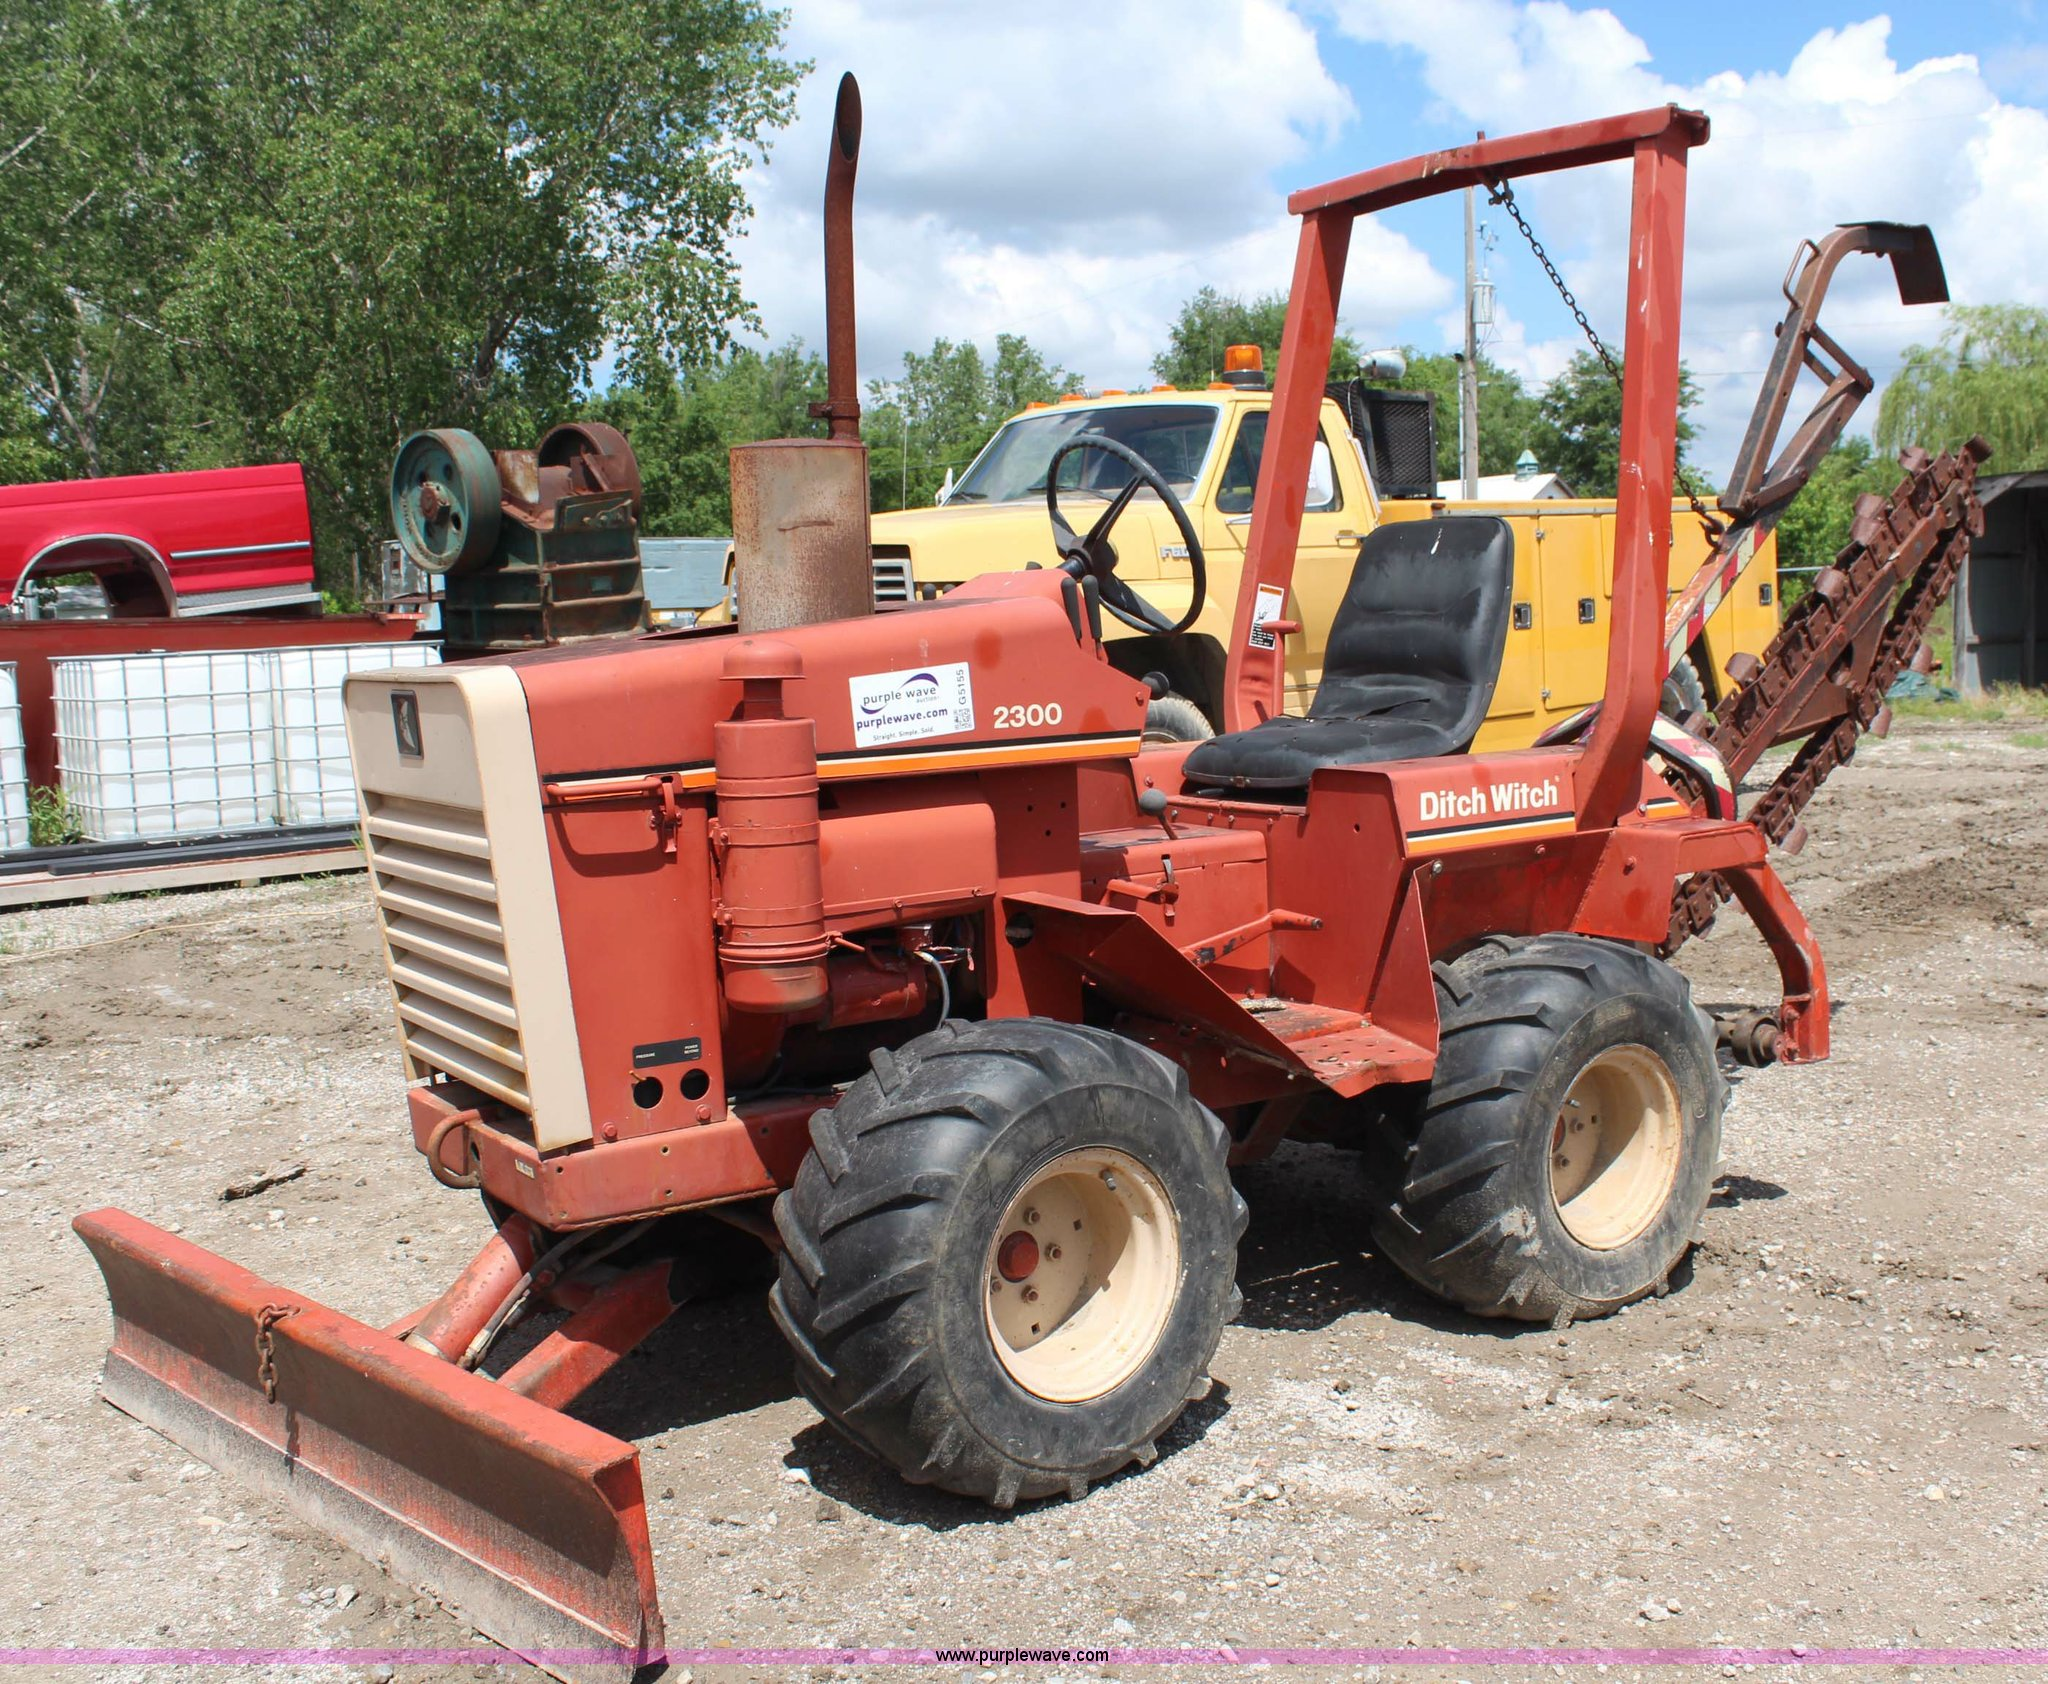 Ditch Witch 2300 trencher | Item G5155 | SOLD! June 27 Const